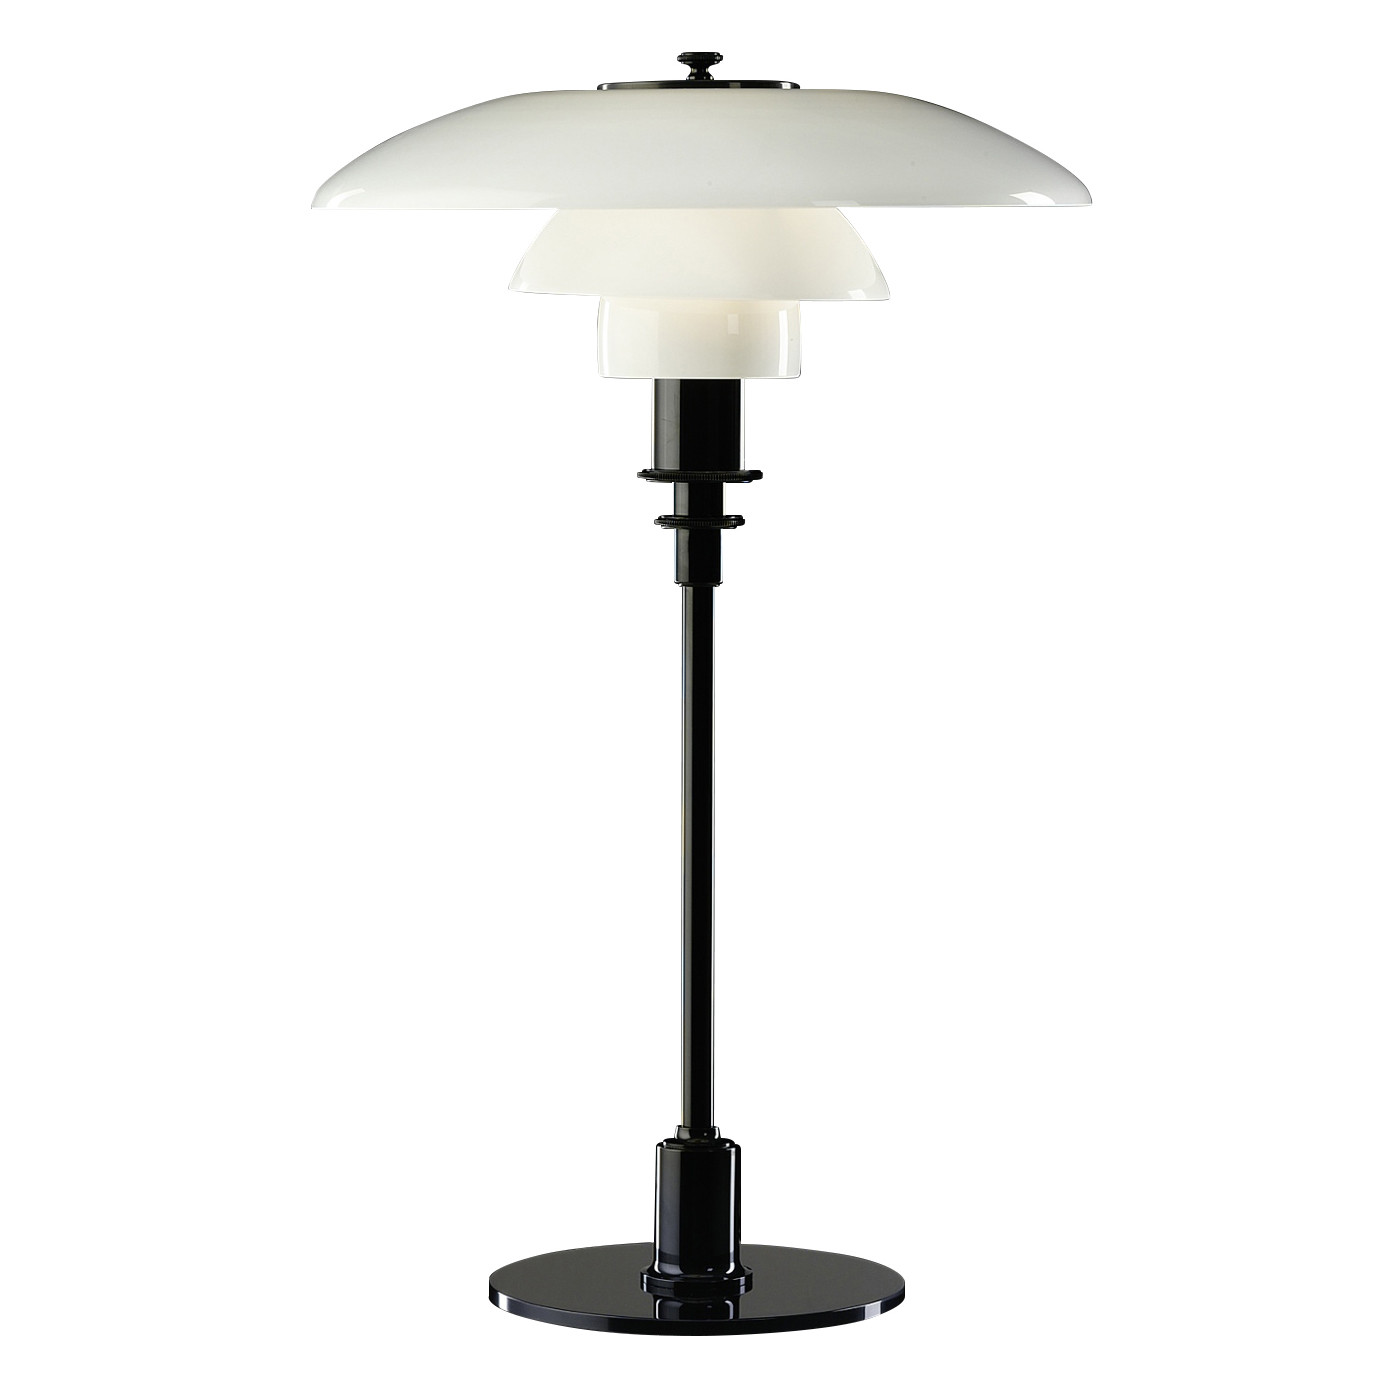 Louis Poulsen Ph 3 2 Table Lamp